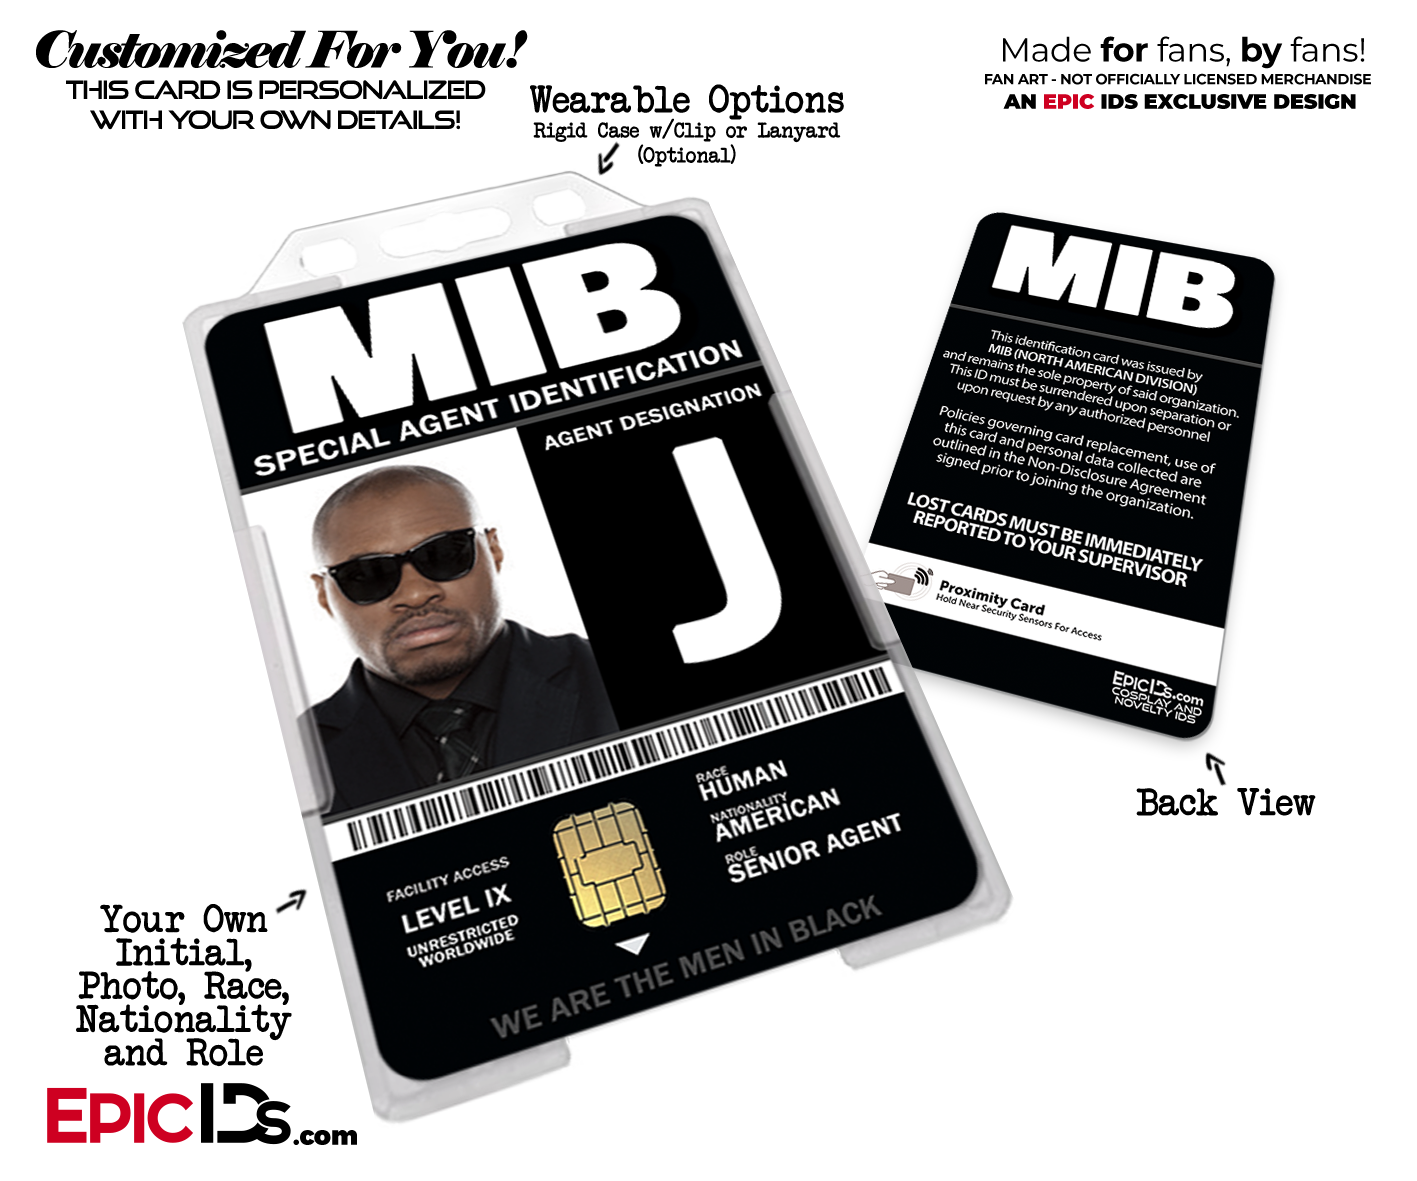 Special Agent Mib Men In Black Cosplay Name Badge Custom Photo Personalized